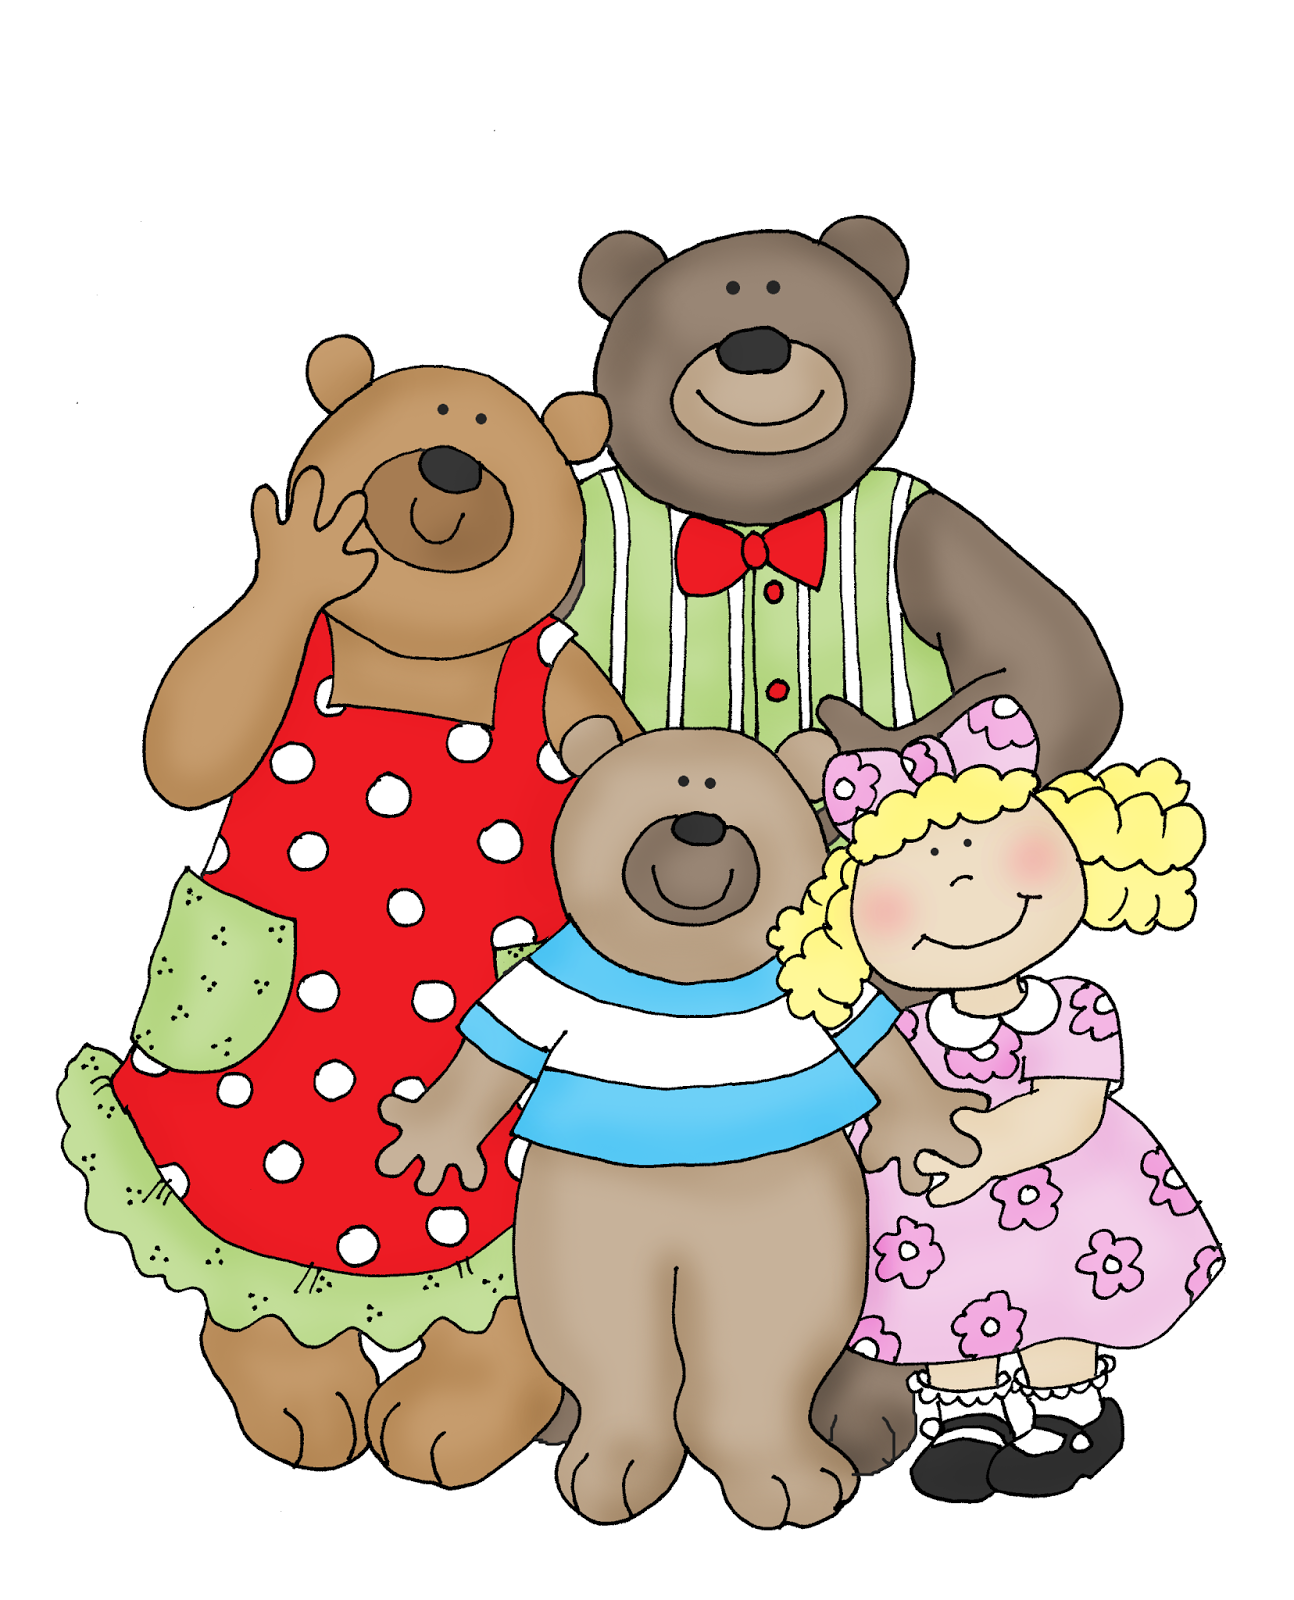 goldilocks and the three bears house mouse in color for card rh pinterest com goldilocks and the three bears clipart free